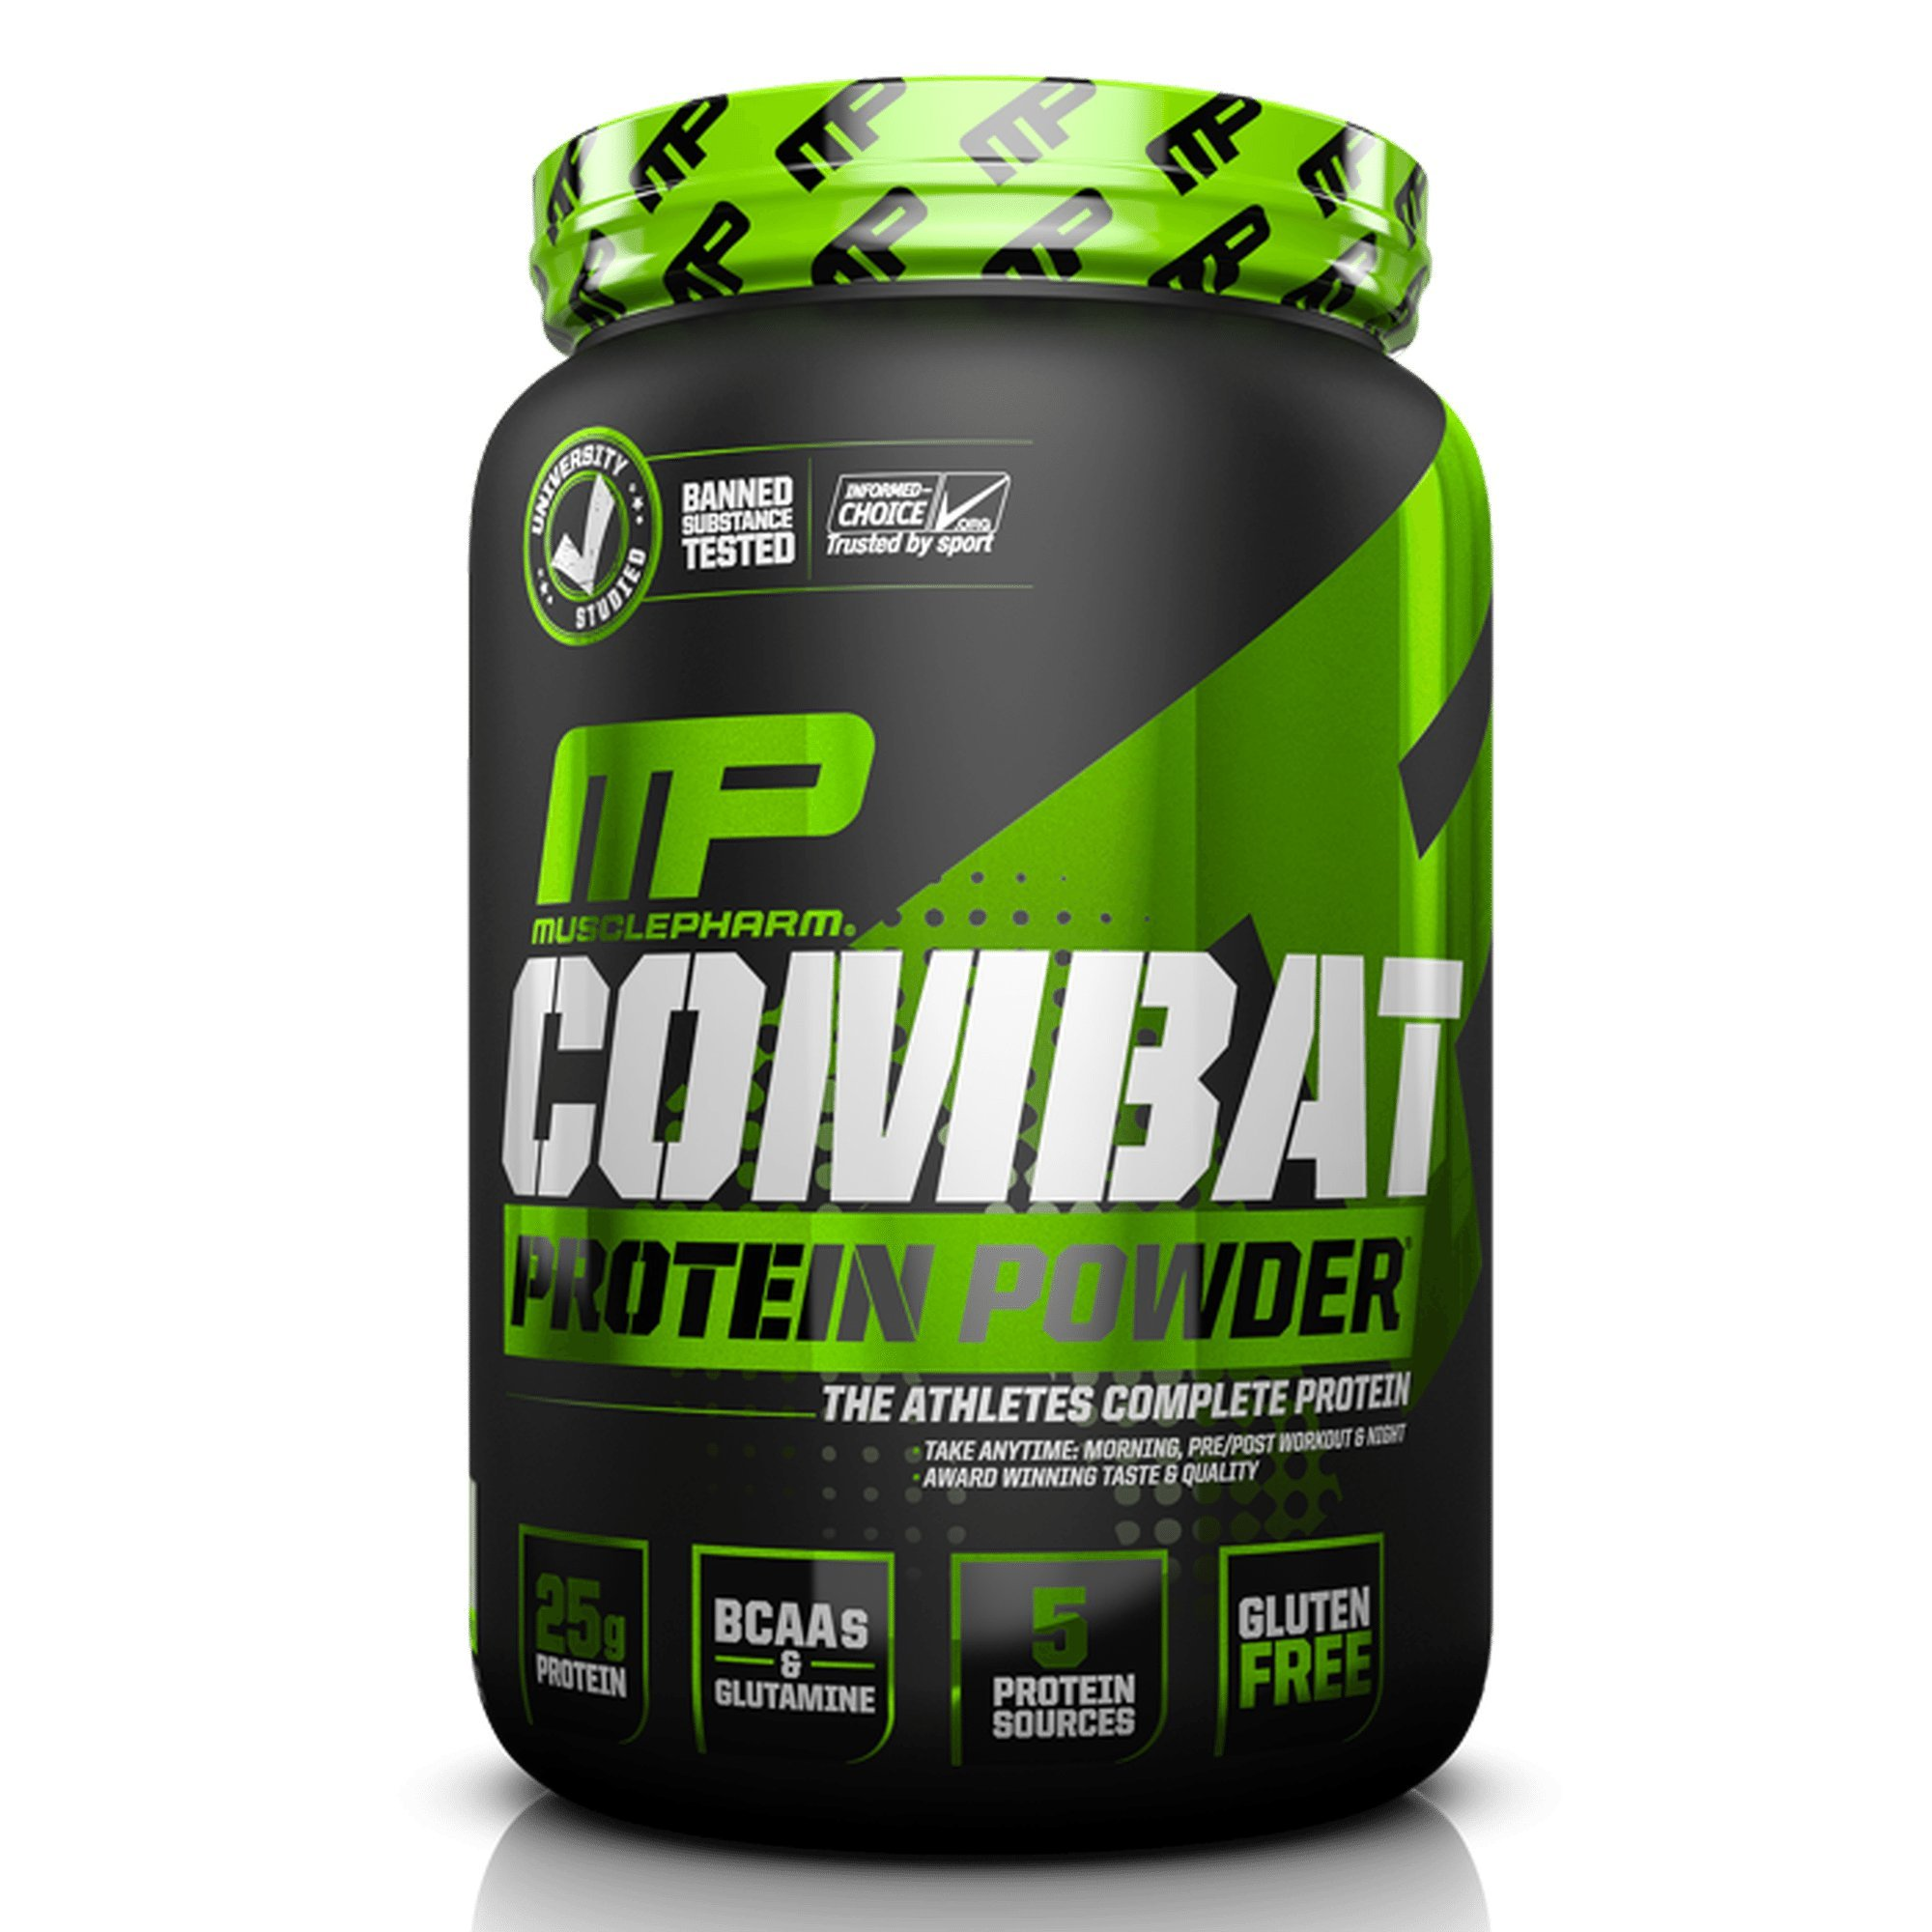 MusclePharm Combat Protein Powder - Essential blend of Whey, Isolate, Casein and Egg Protein with BCAA's and Glutamine for Recovery, Vanilla, 2 Pound, 27 Servings